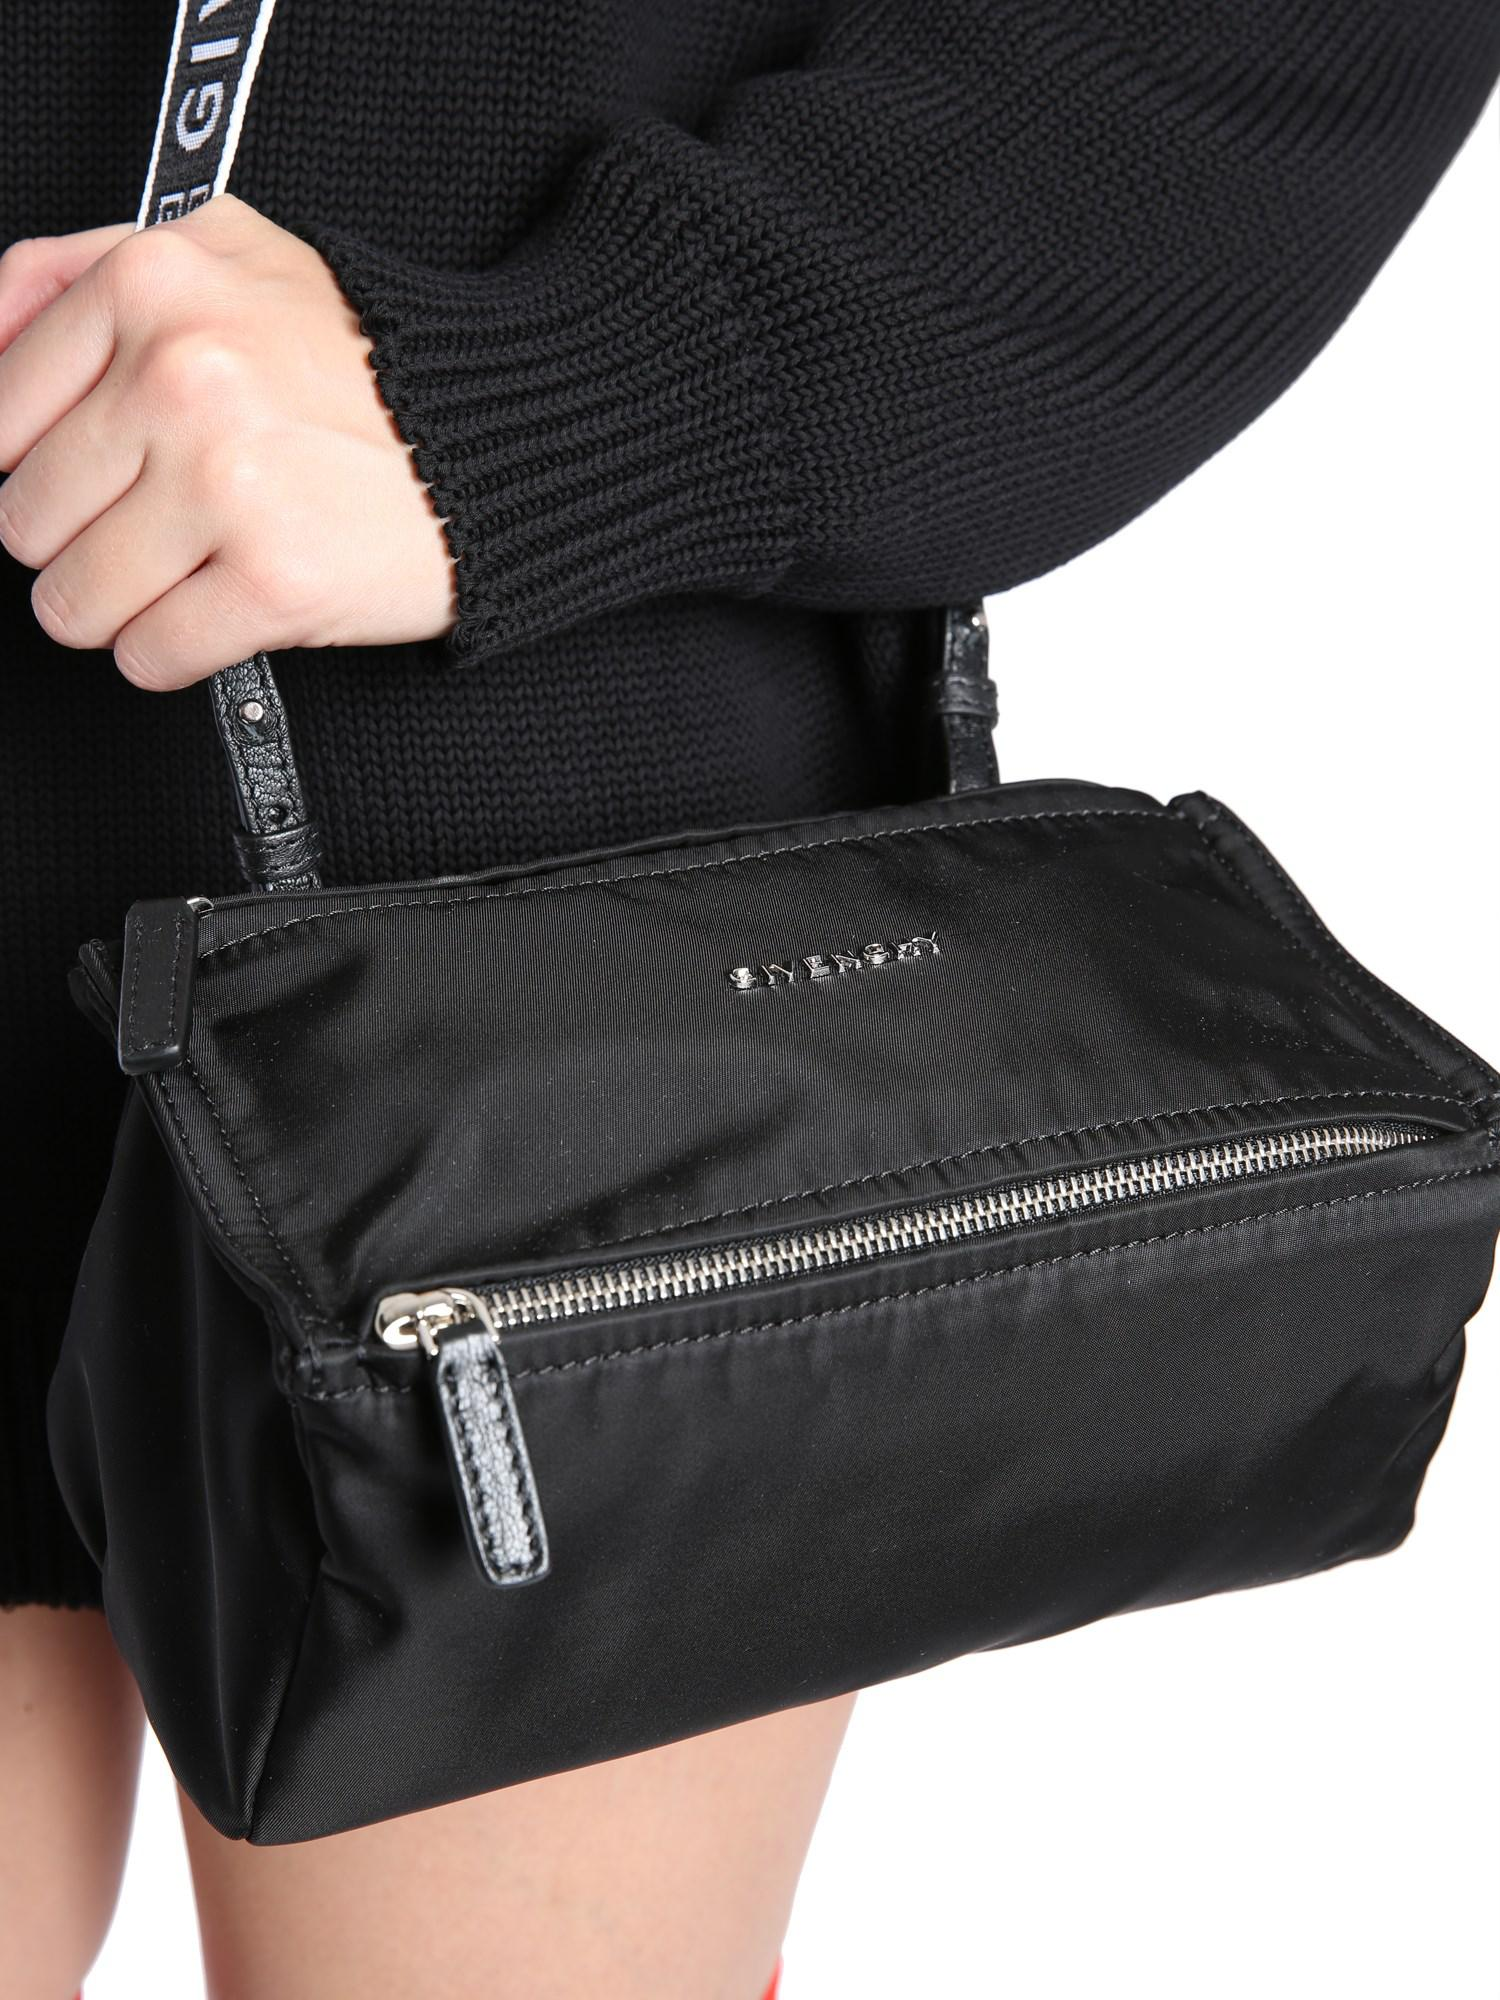 Lyst - Givenchy 4g Mini Pandora Bag In Nylon in Black bc1a74e51d639